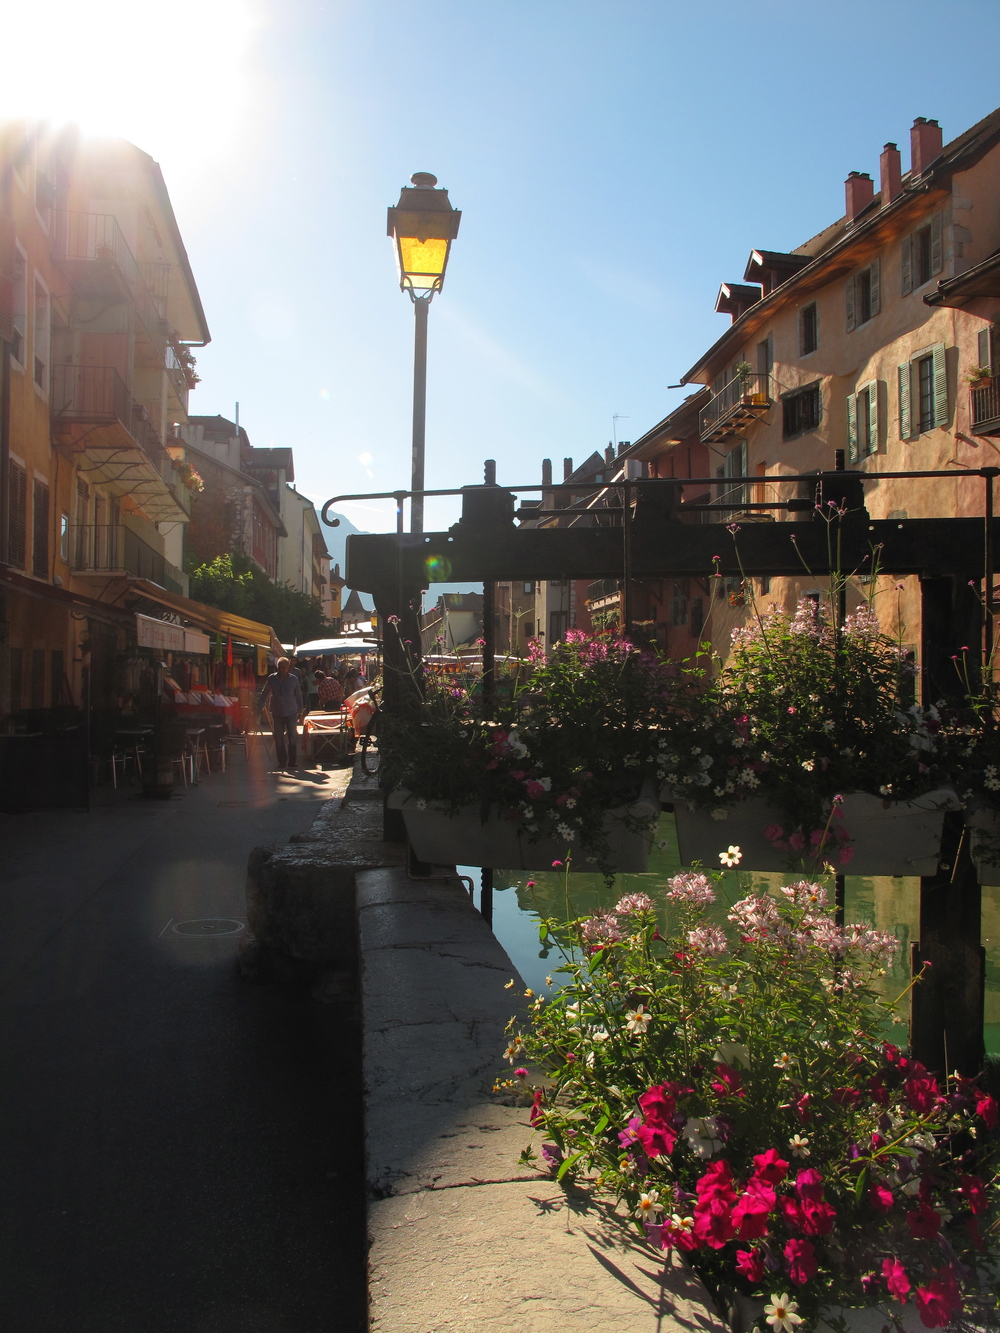 Lamp post and a bridge covered in flowers on the canals of Annecy le Vieux